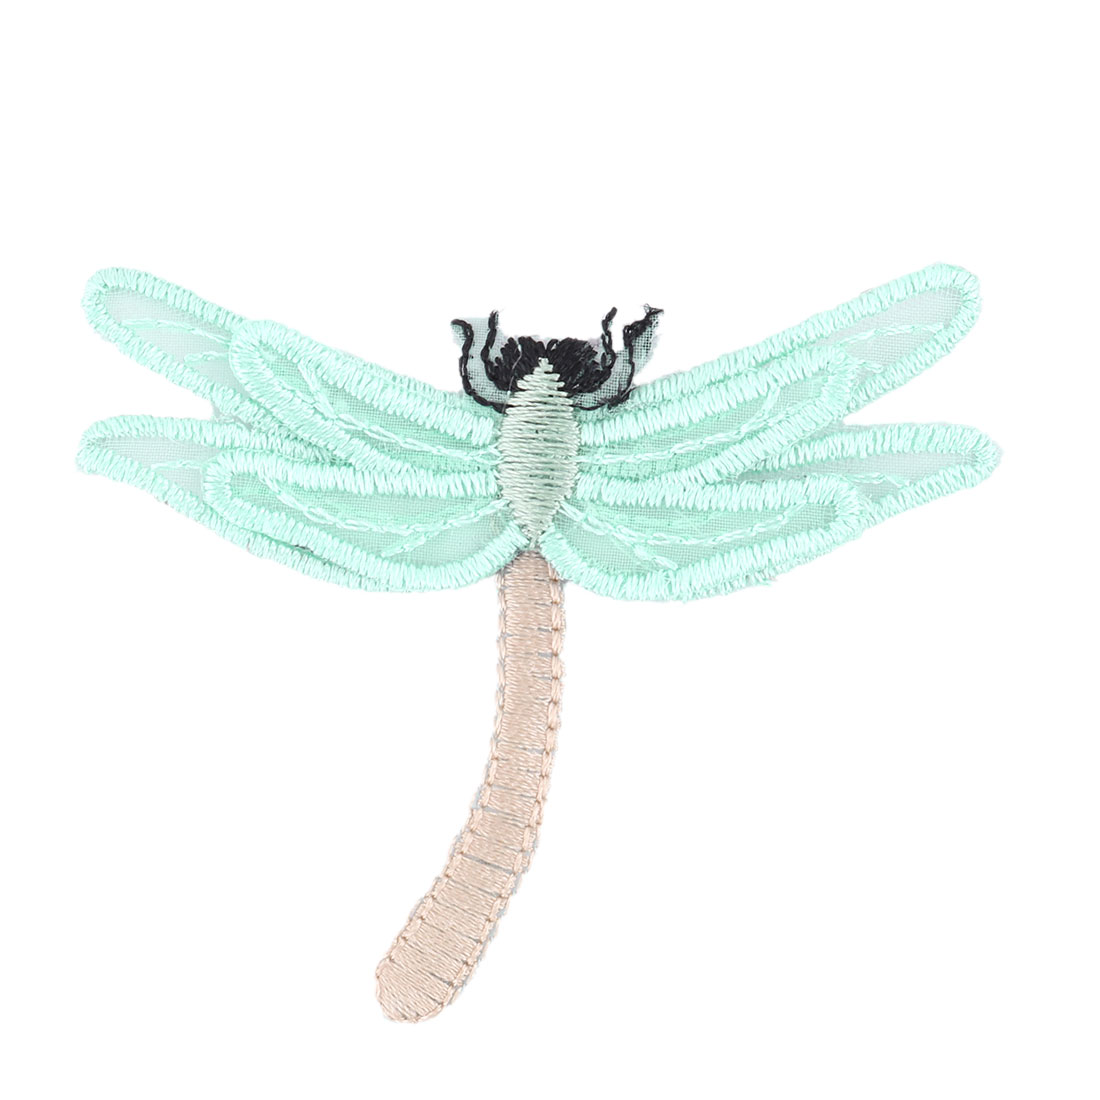 Unique Bargains Home Organza Dragonfly Design Embroidered DIY Clothes Decor Lace Applique Green